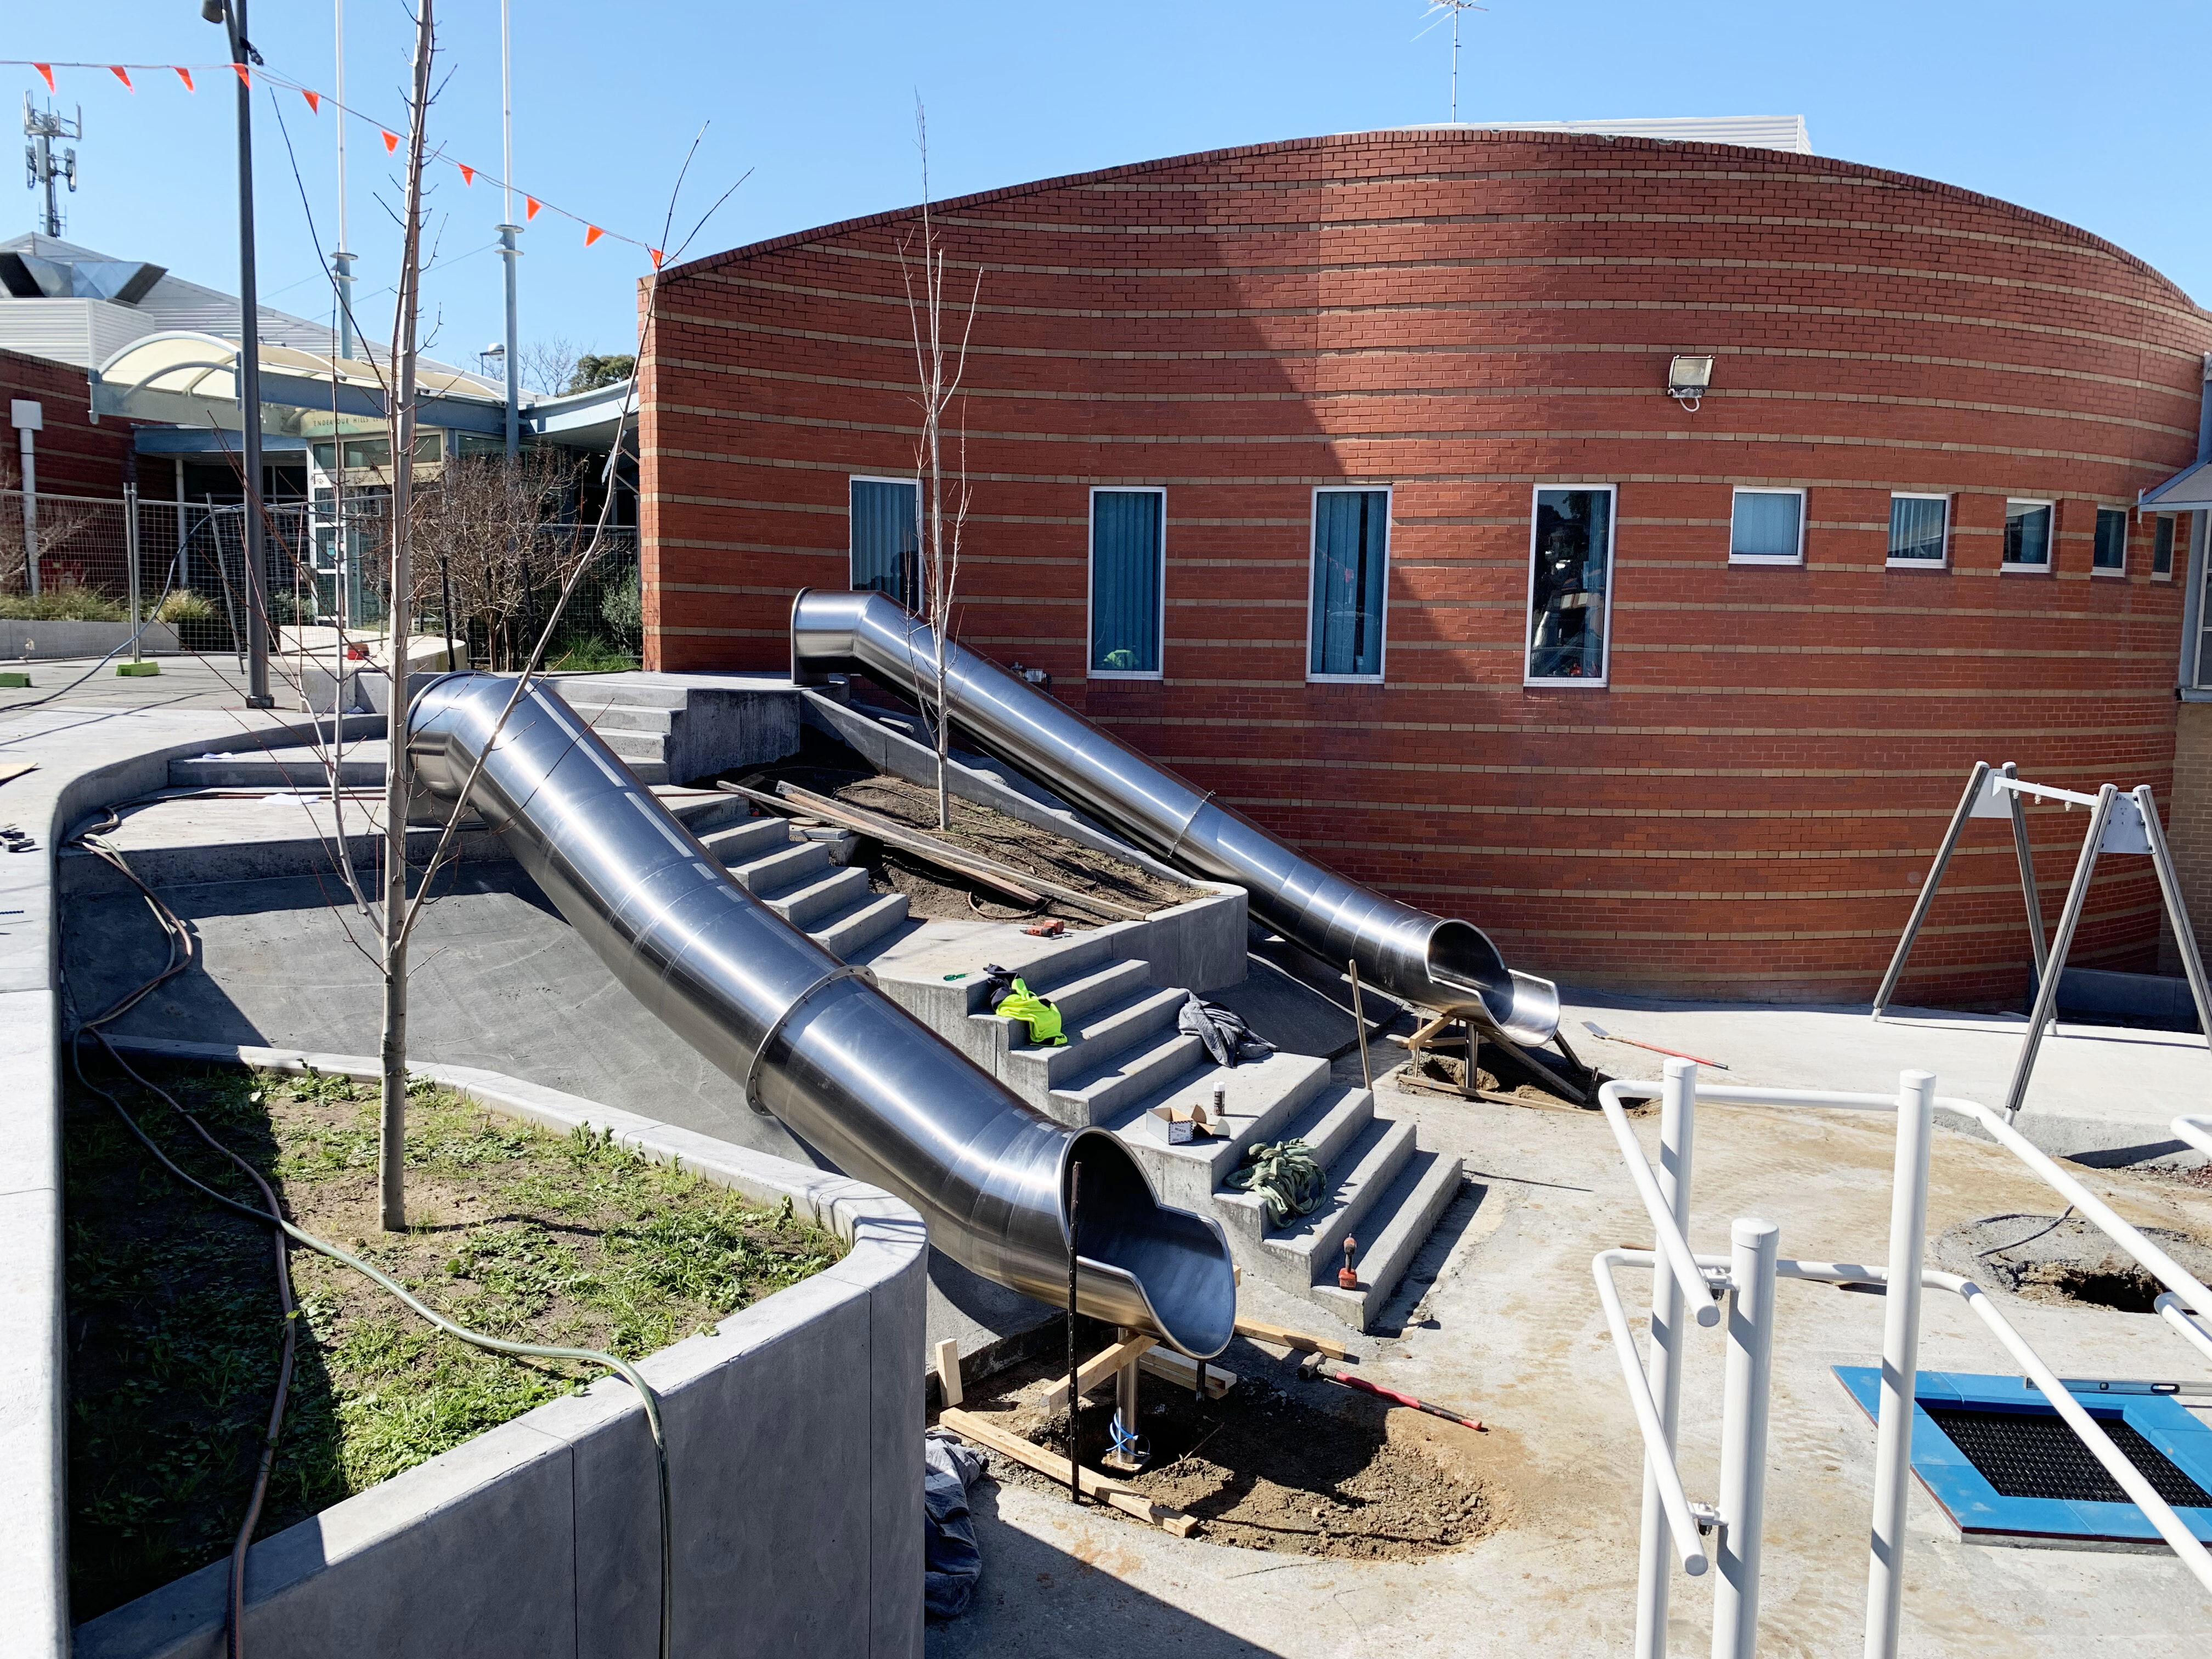 Playground with 2 stainless steel tube slides